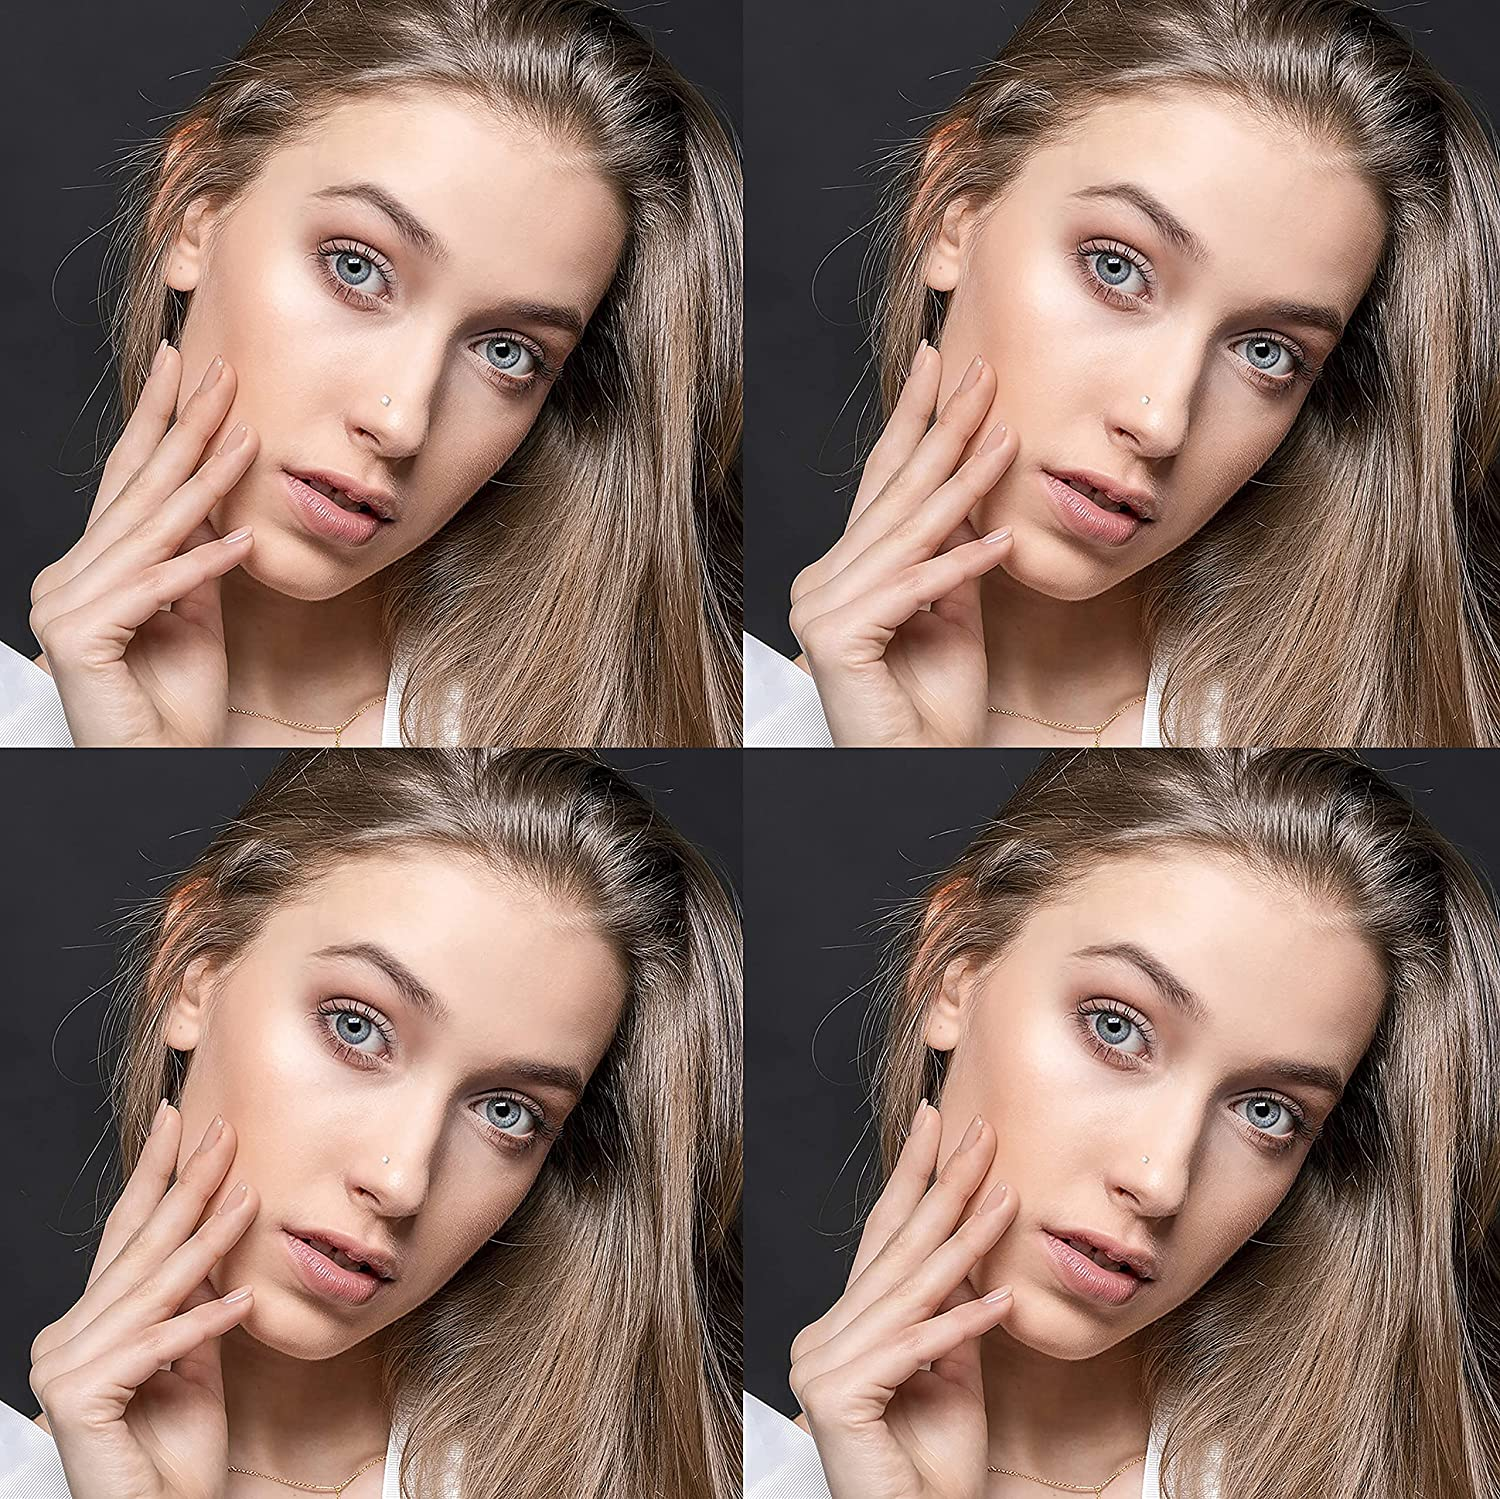 samsen Stainless Steel Nose Piercing Set with 1PCS 16G 5 Round Opal Nose Ring and 8 PCS L Shape Nose Studs